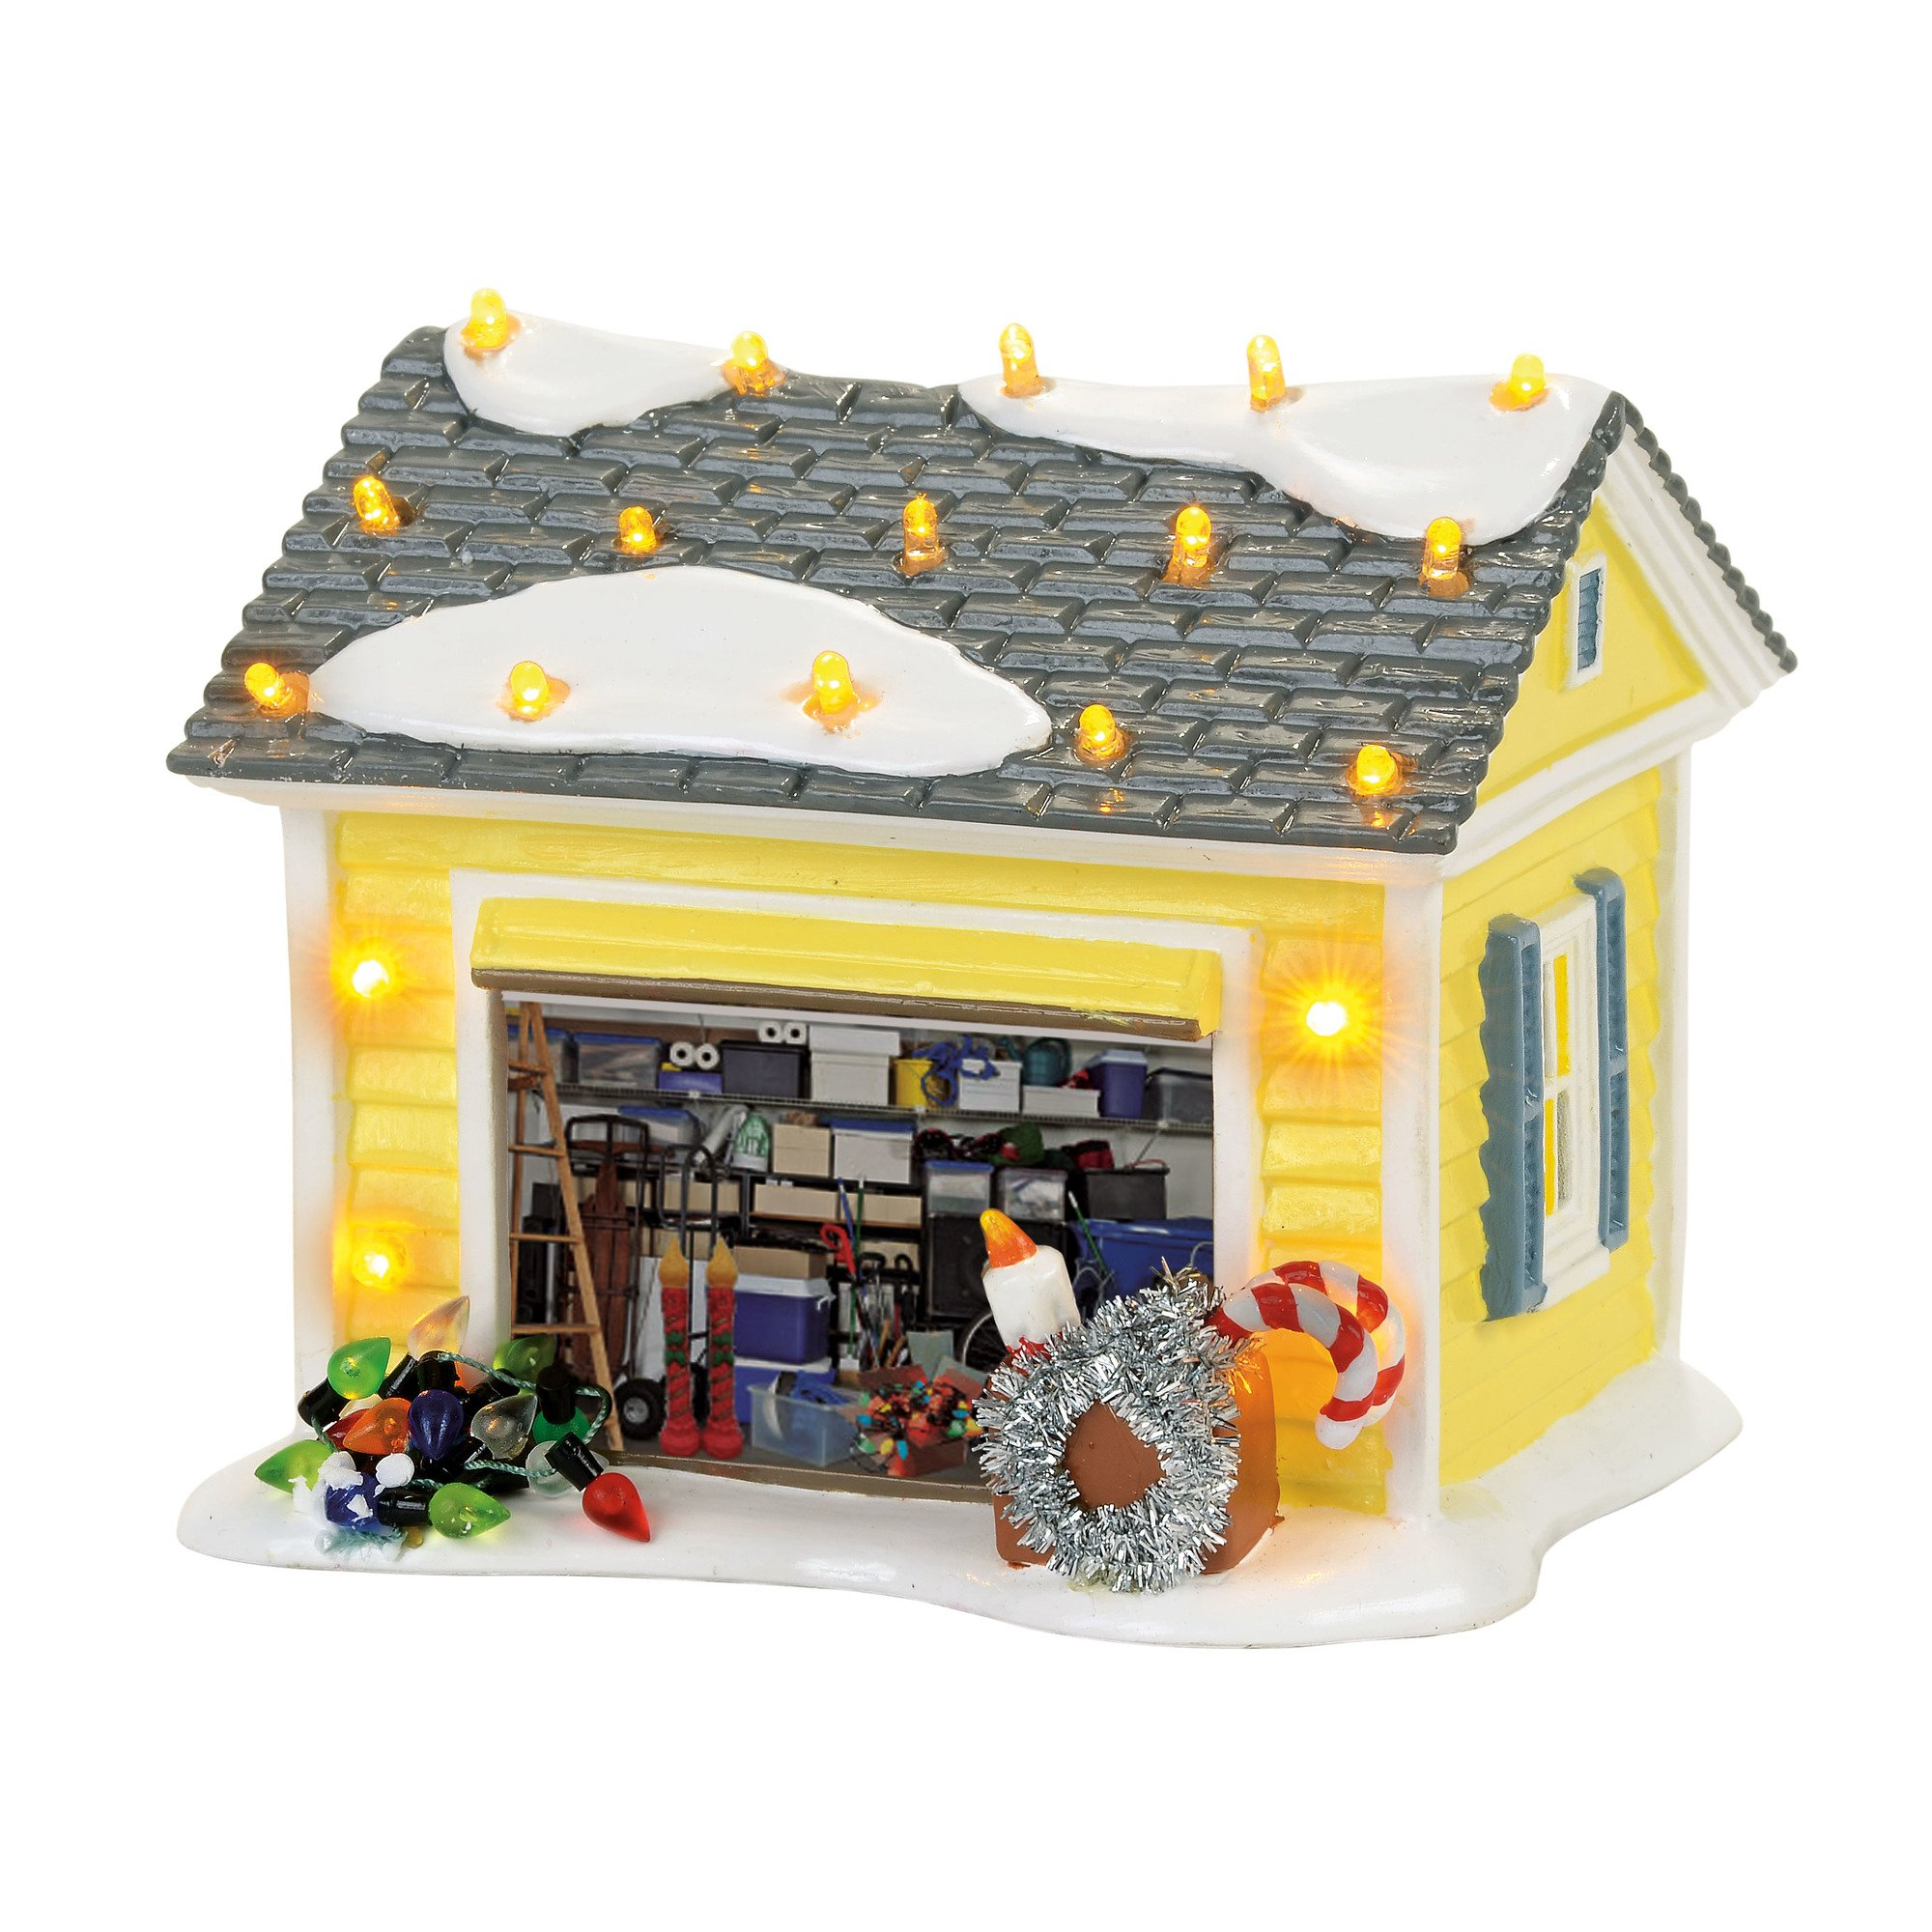 Department 56 4056686 Snow Village Christmas Vacation the Griswold Holiday Garage Lit Building, Multicolor by Department 56